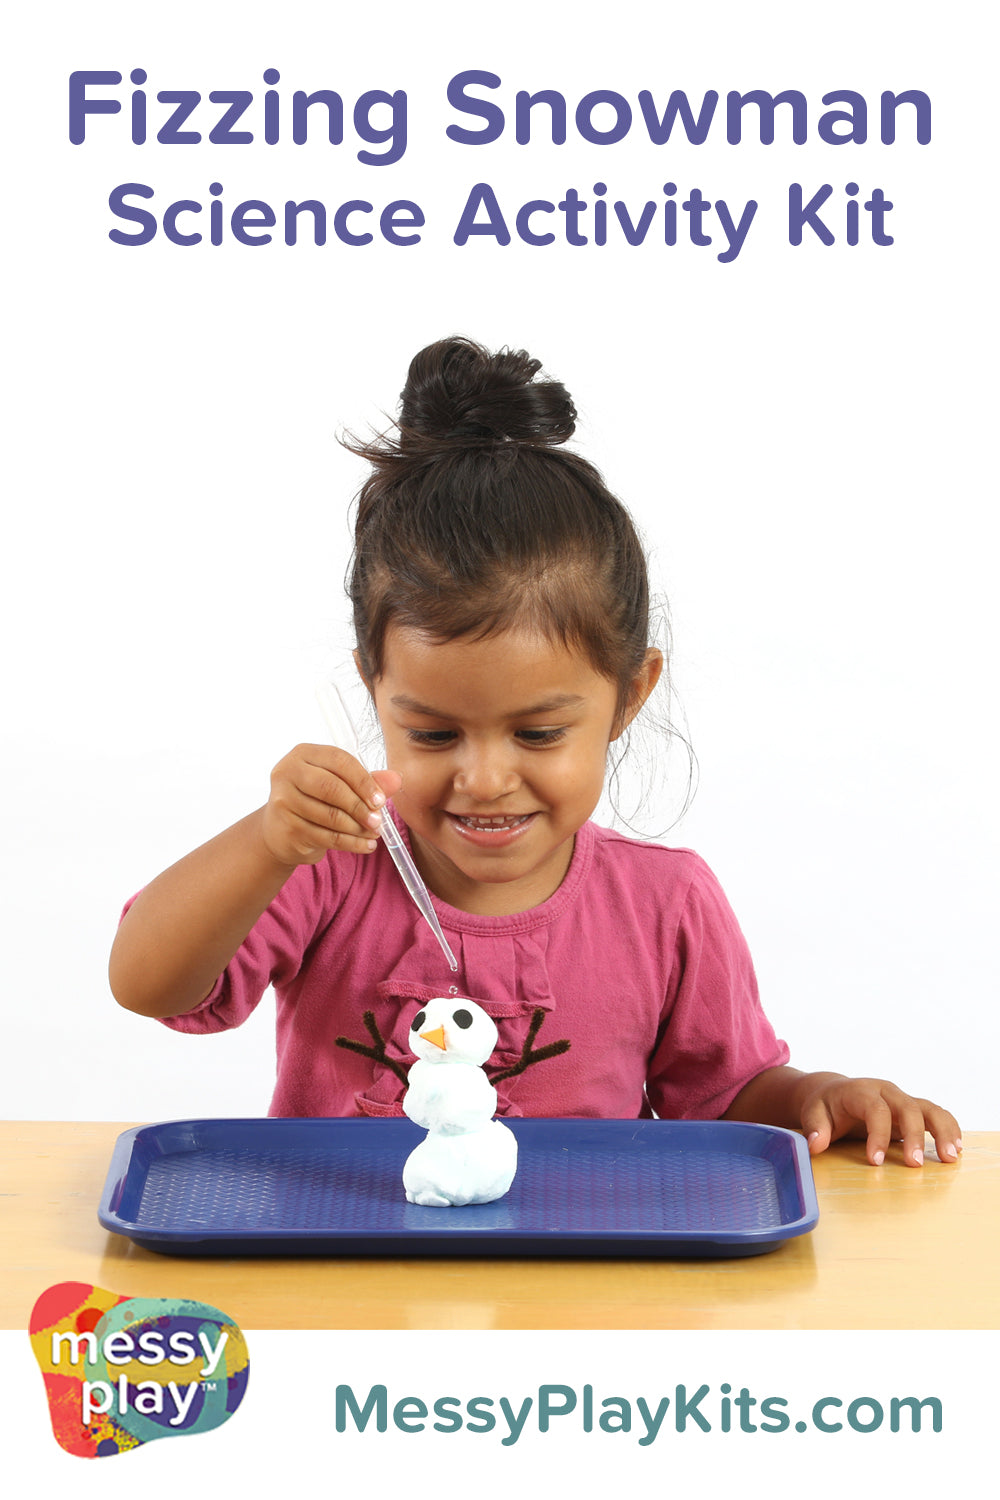 Fizzing Snowman from Messy Play Kits